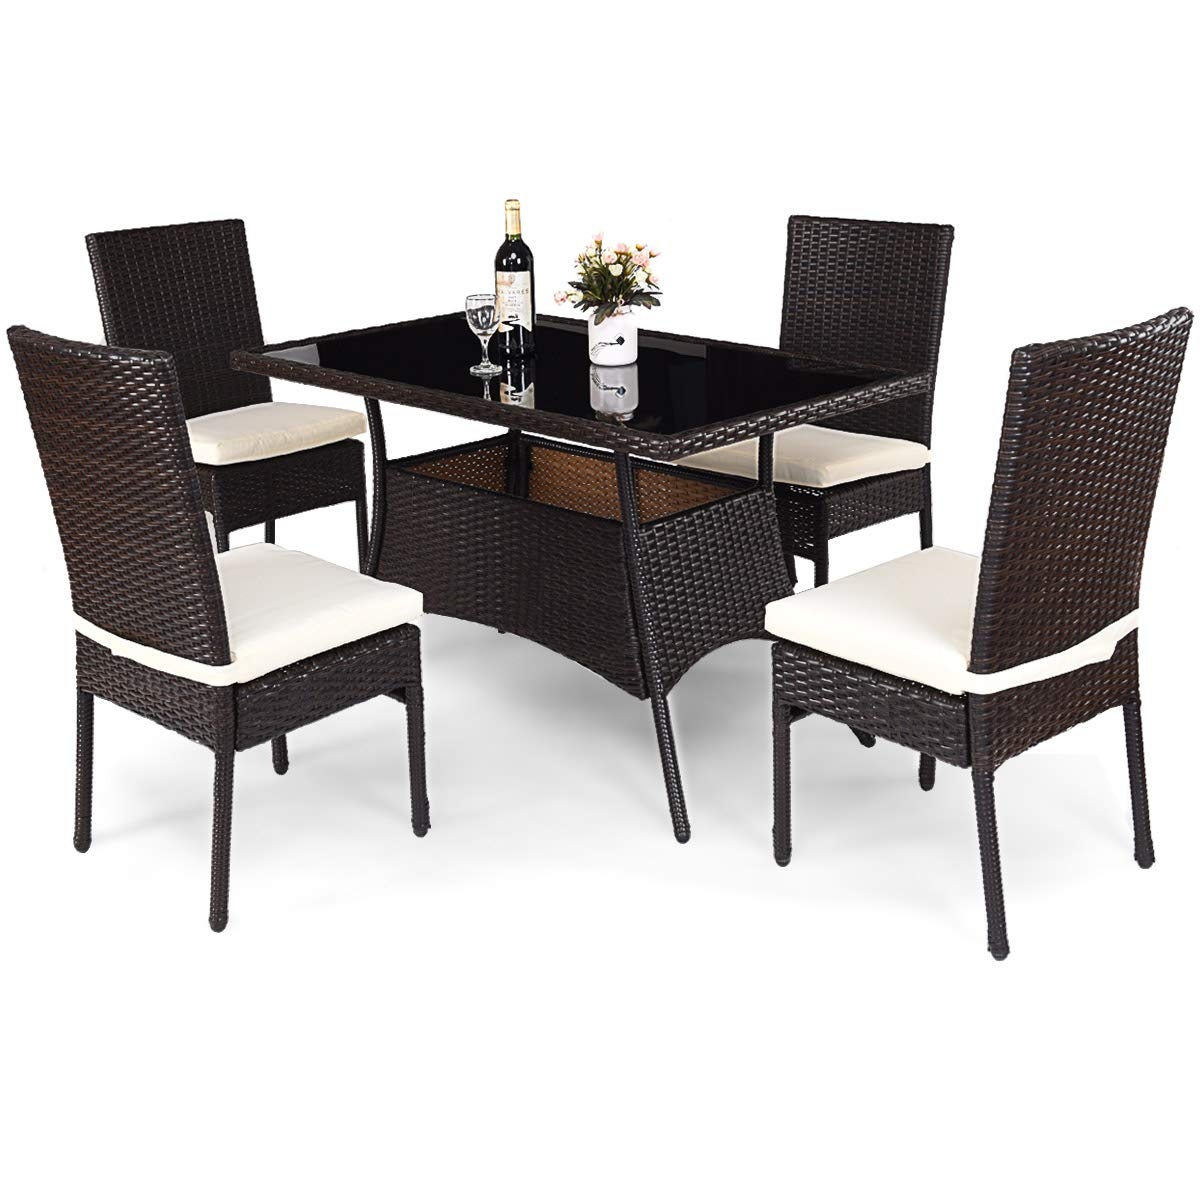 a2aac7891 Amazon.com  Tangkula Patio Furniture